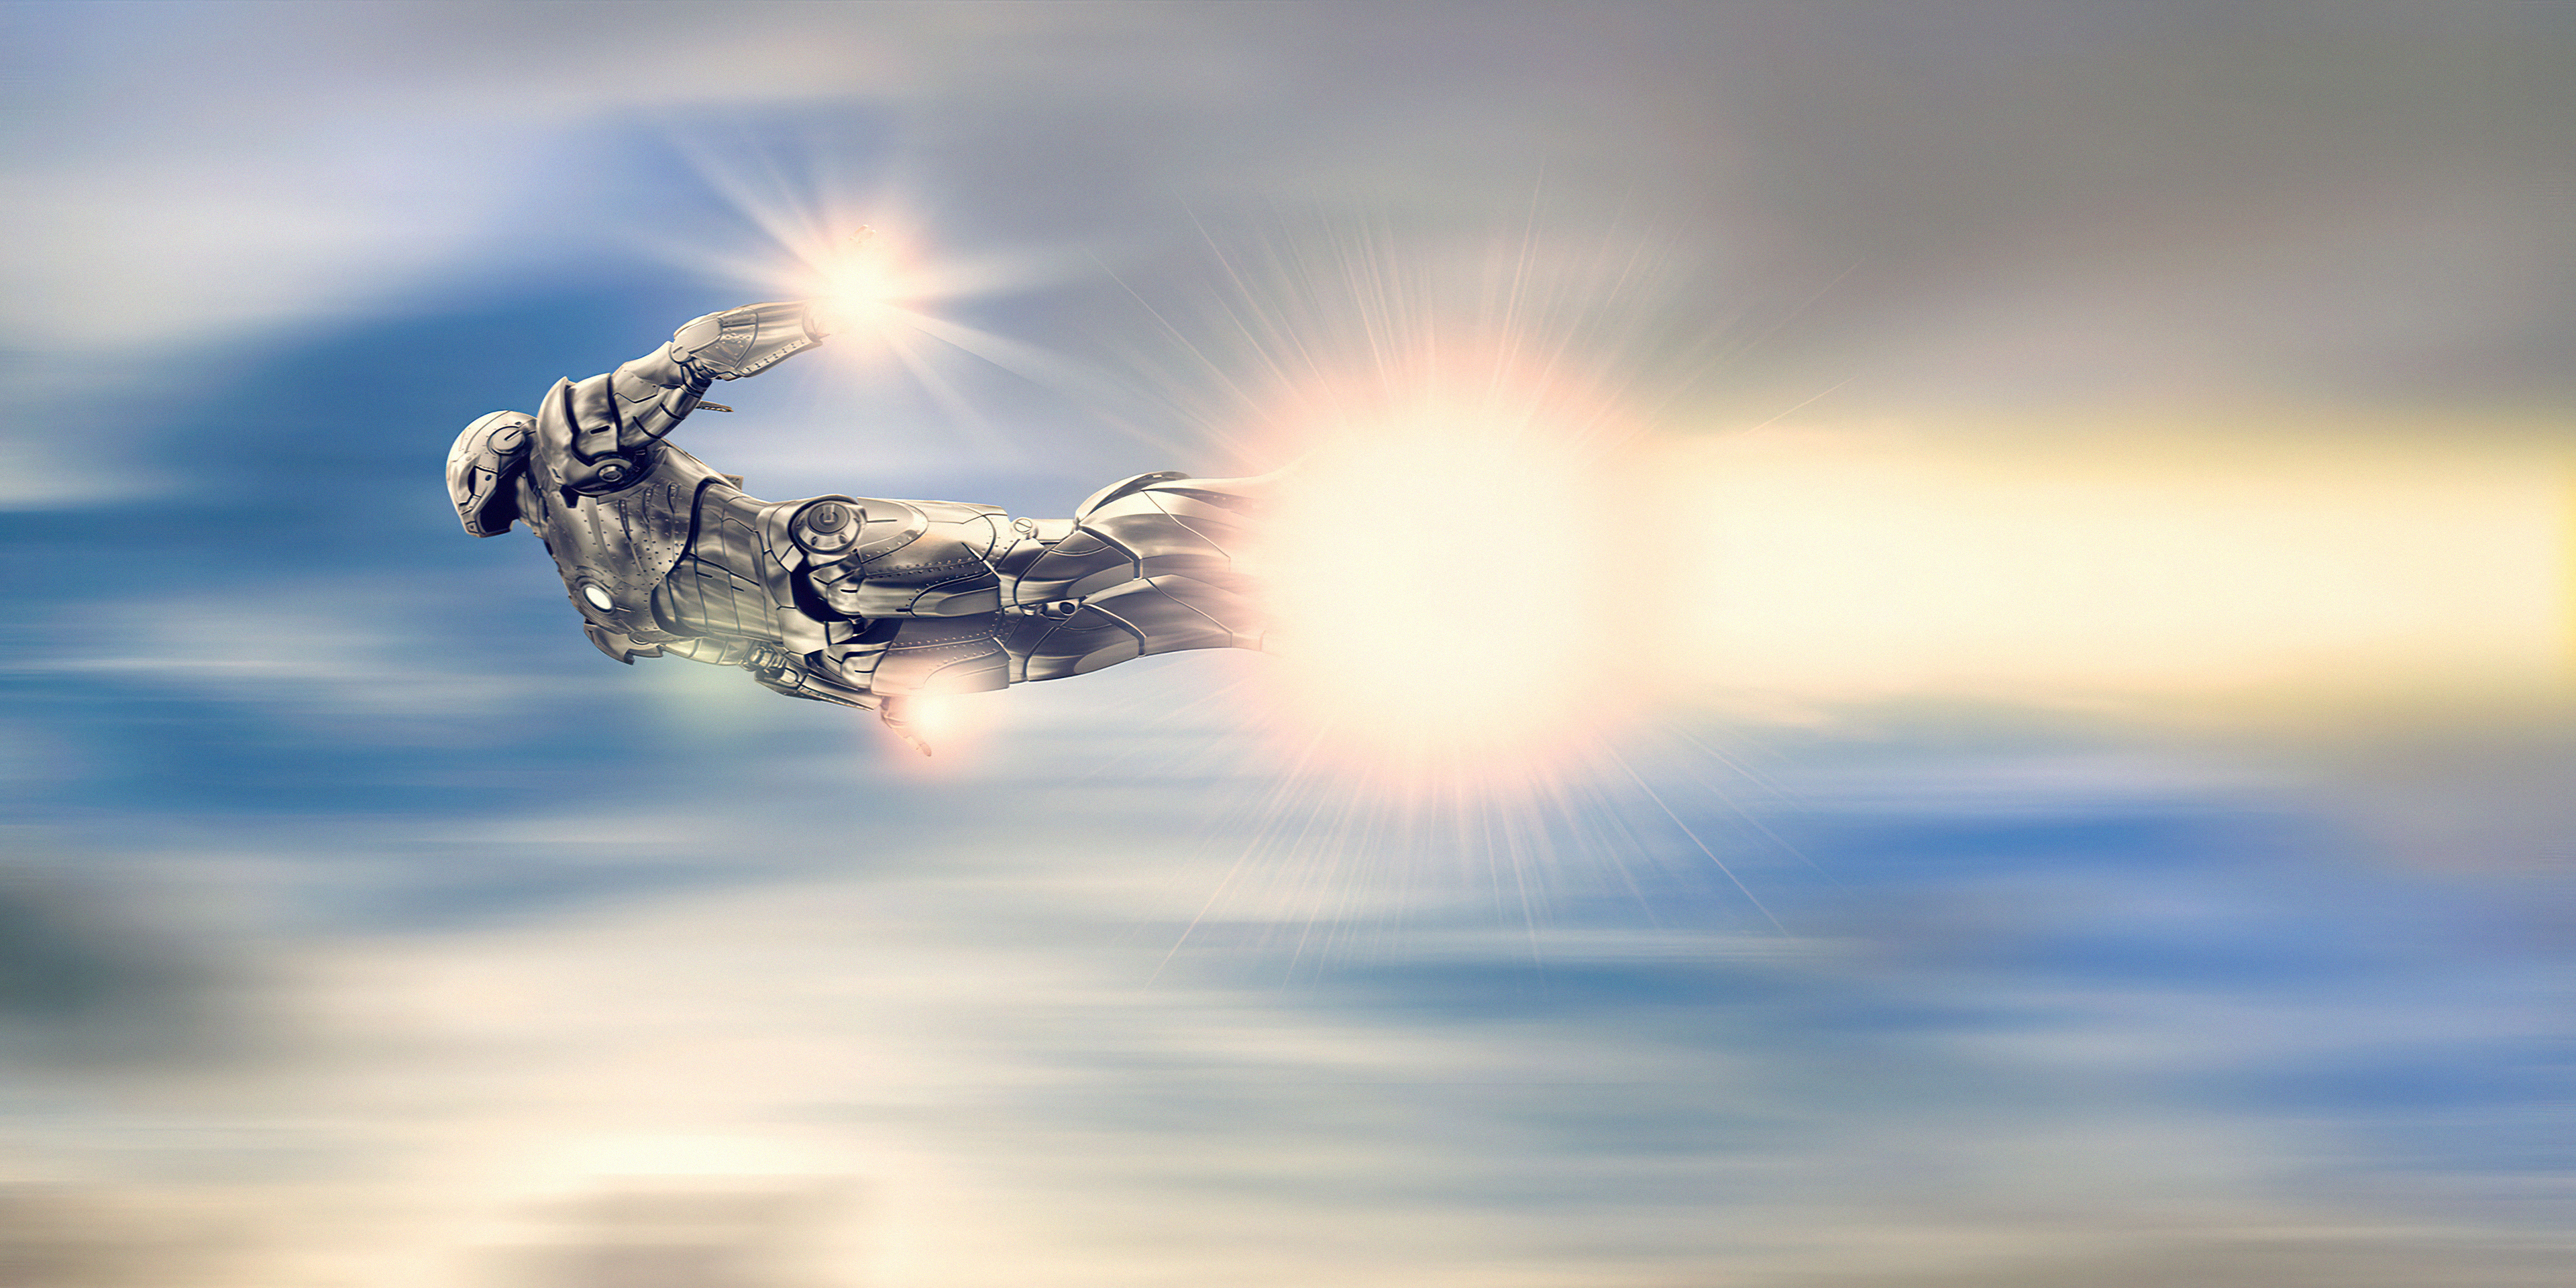 Wallpaper Iron man silver suit flying